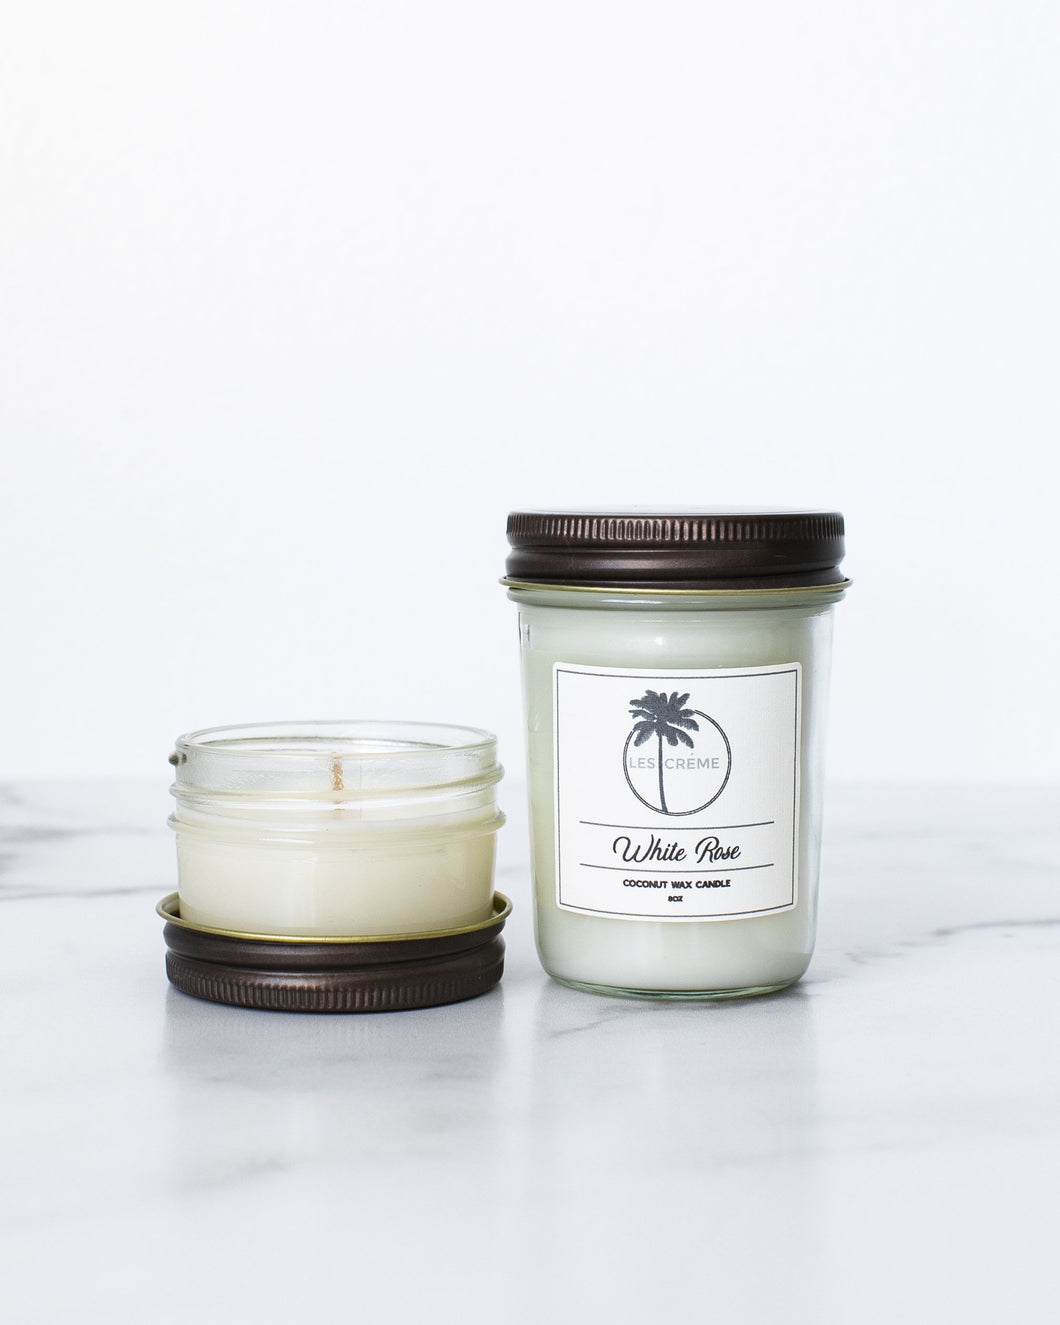 White Rose Coconut Wax Candle